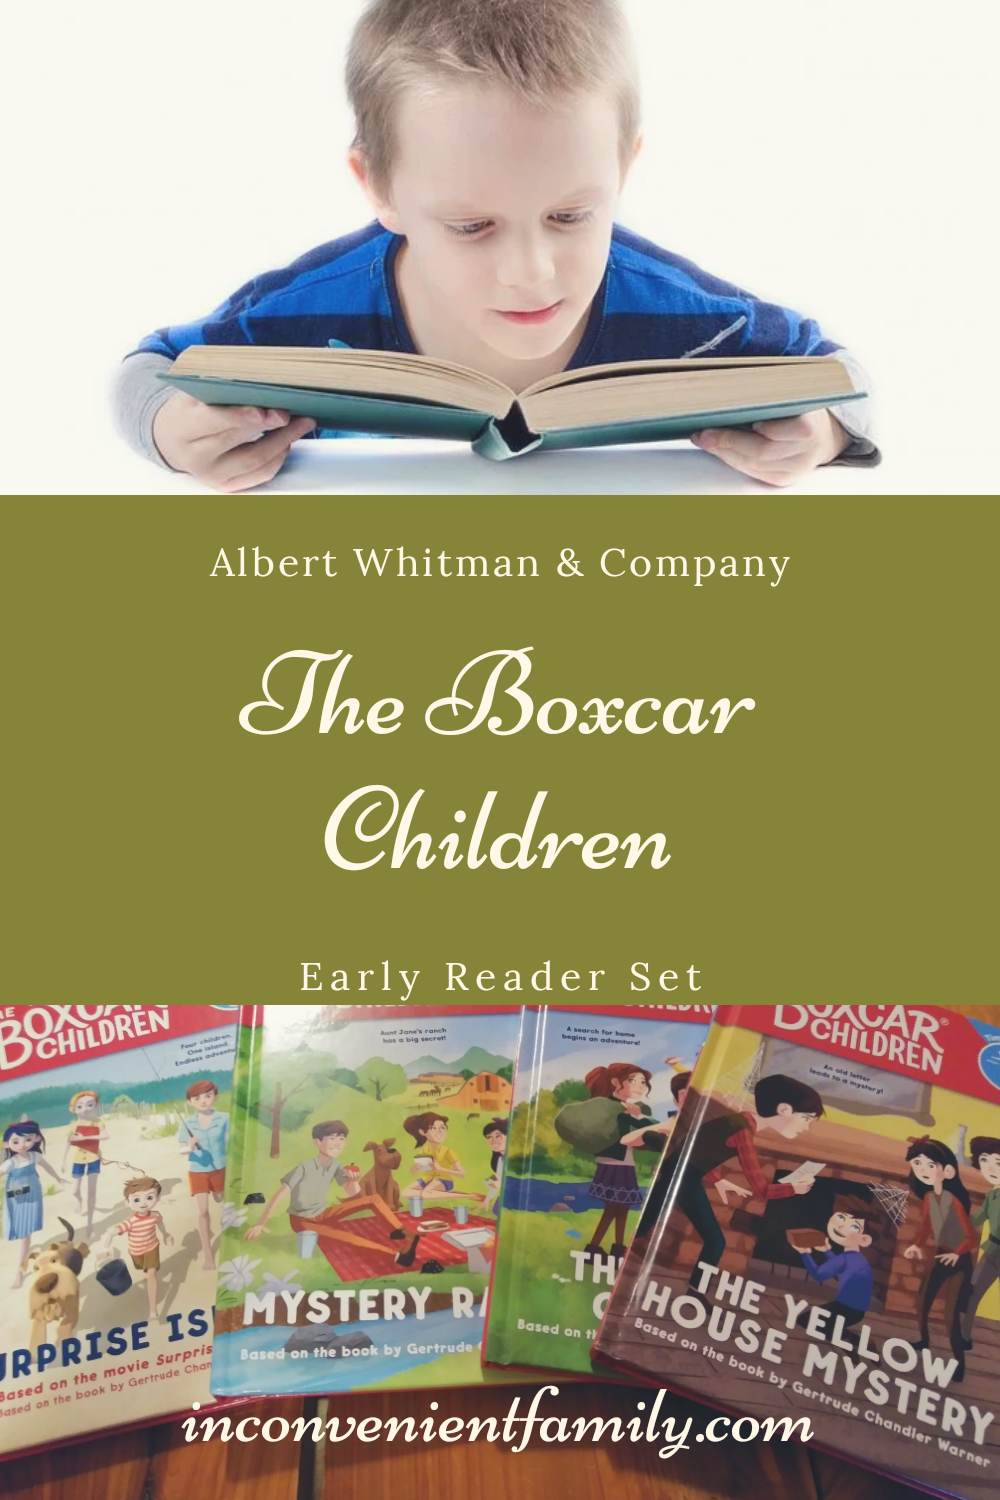 Early Reader set